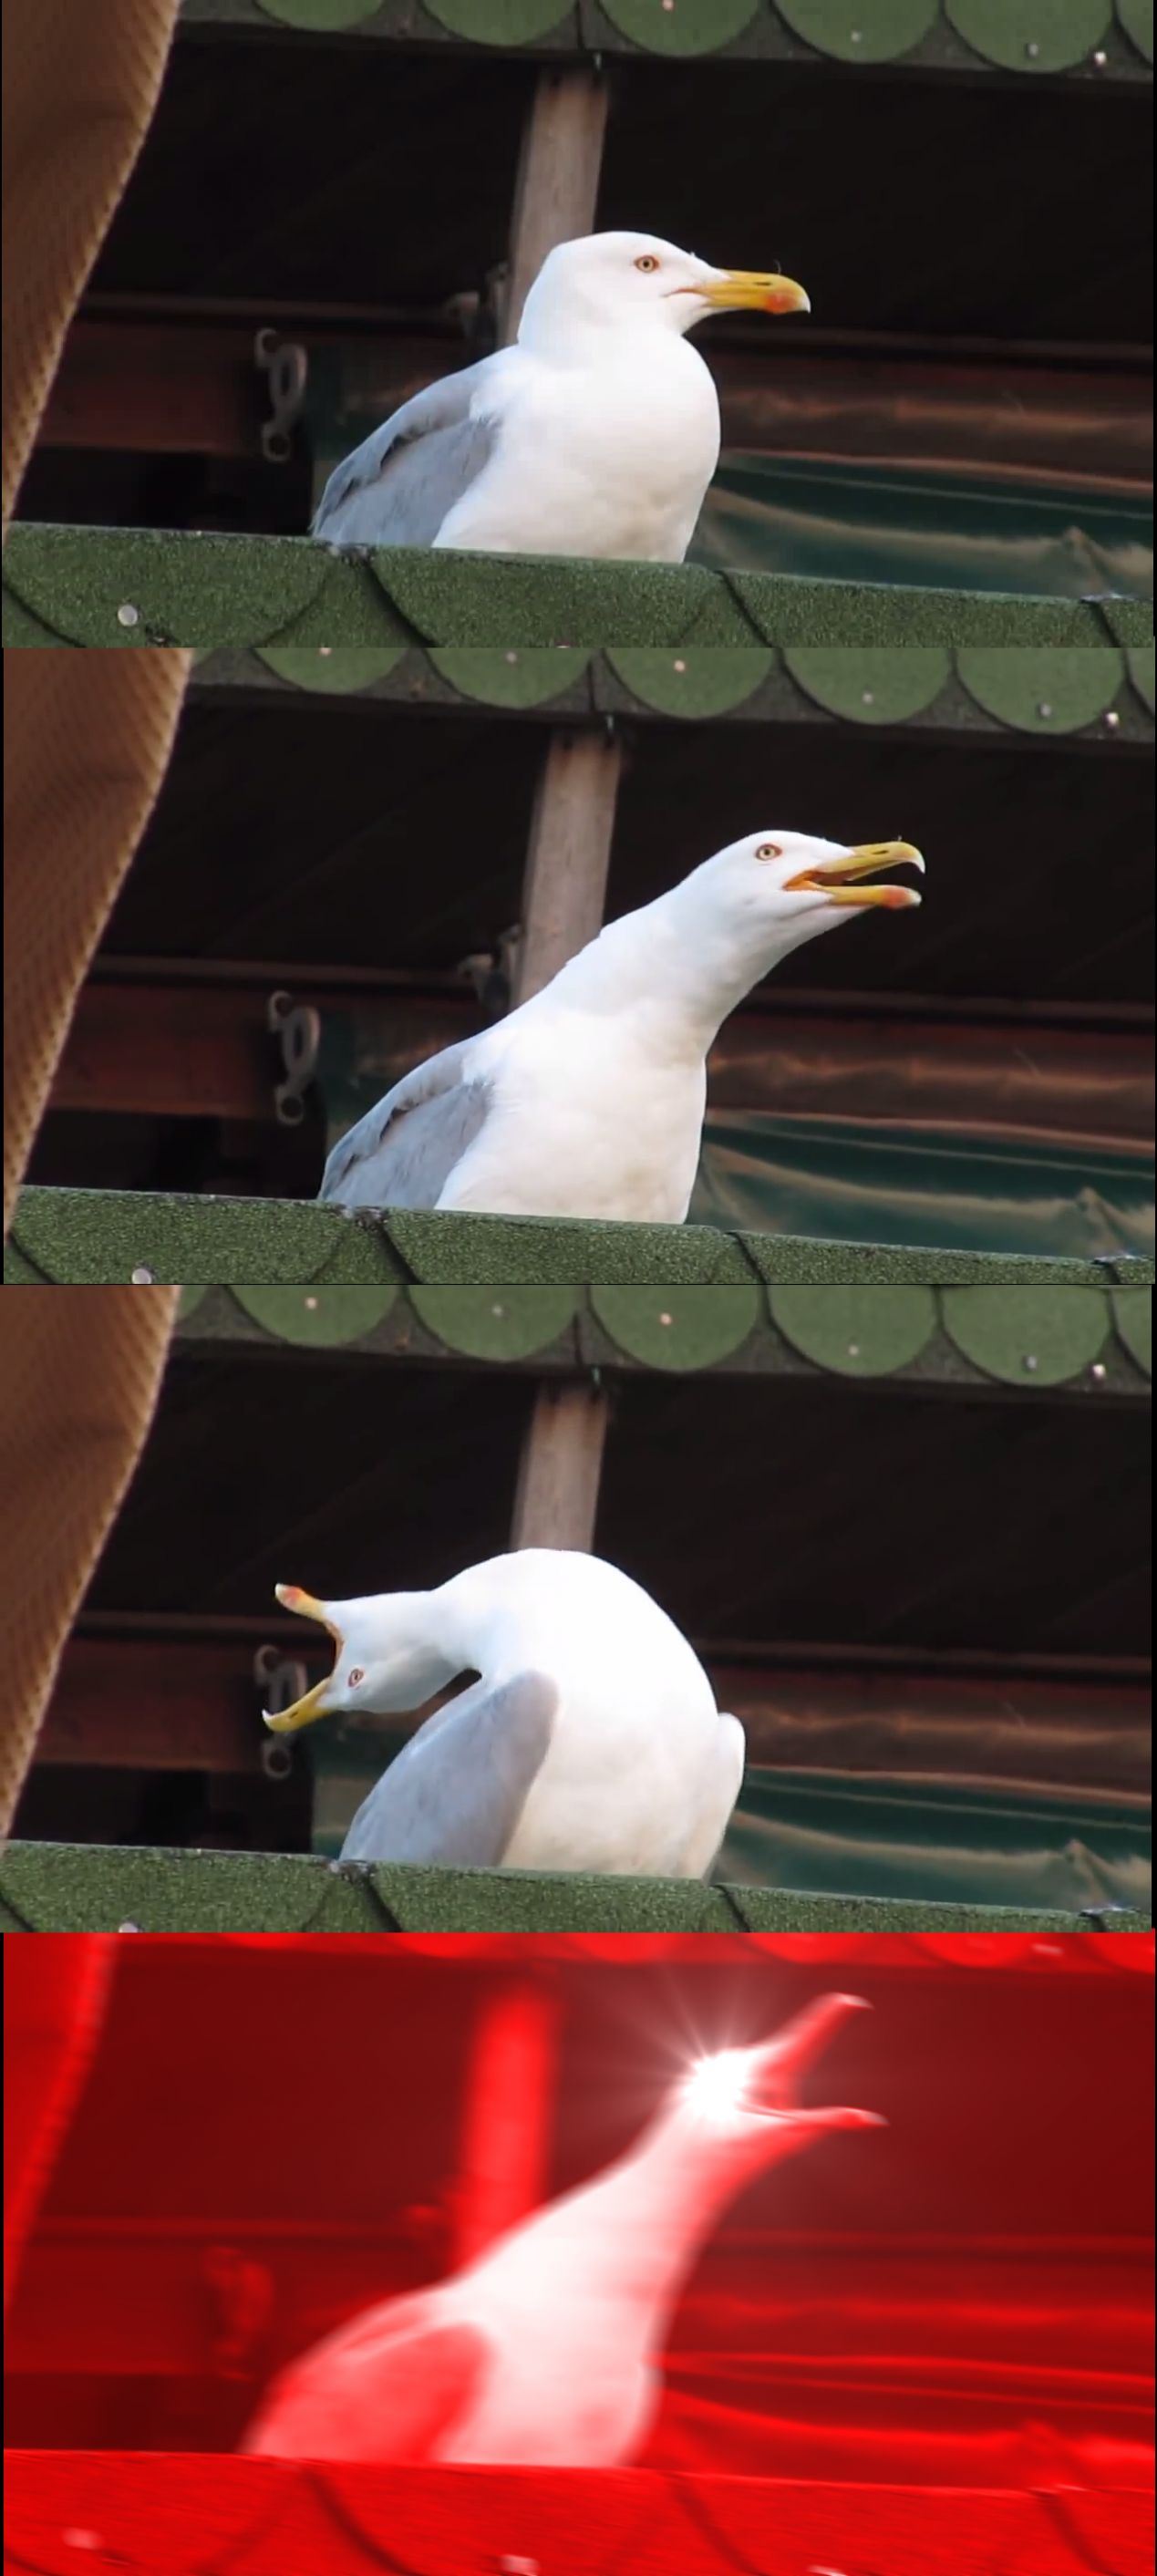 High Quality Inhaling Seagull Blank Meme Template